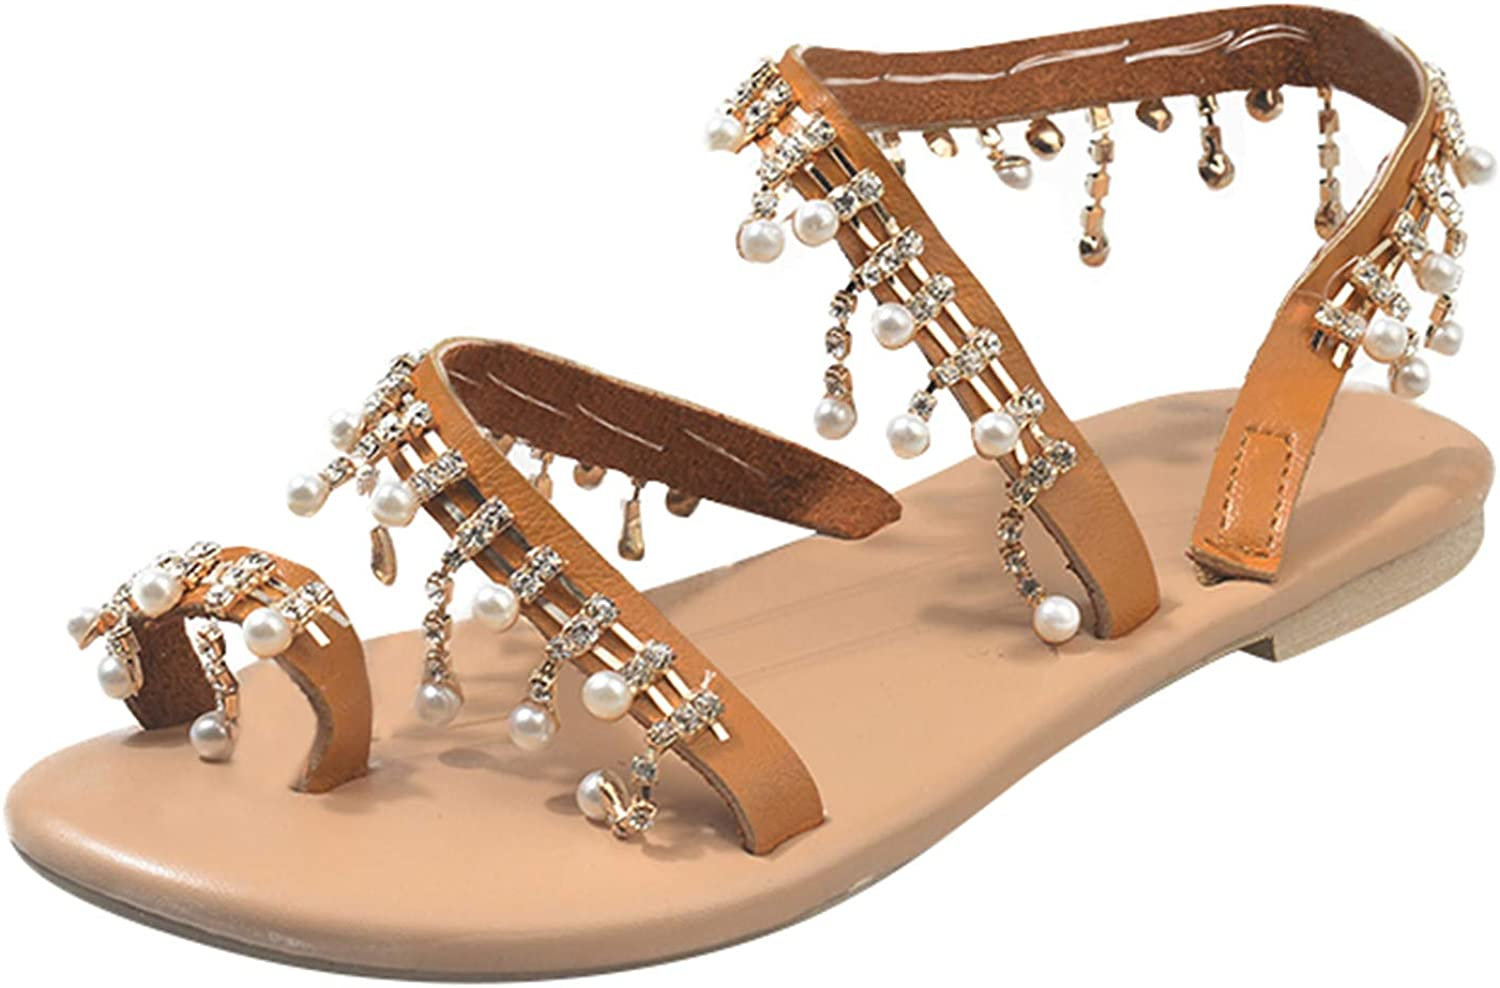 HIBANIL Sandals for Women Dressy Summer,Boho Flower Lace Ring Toe Flat Crystal Pearl Beach Sandals Roman Shoes